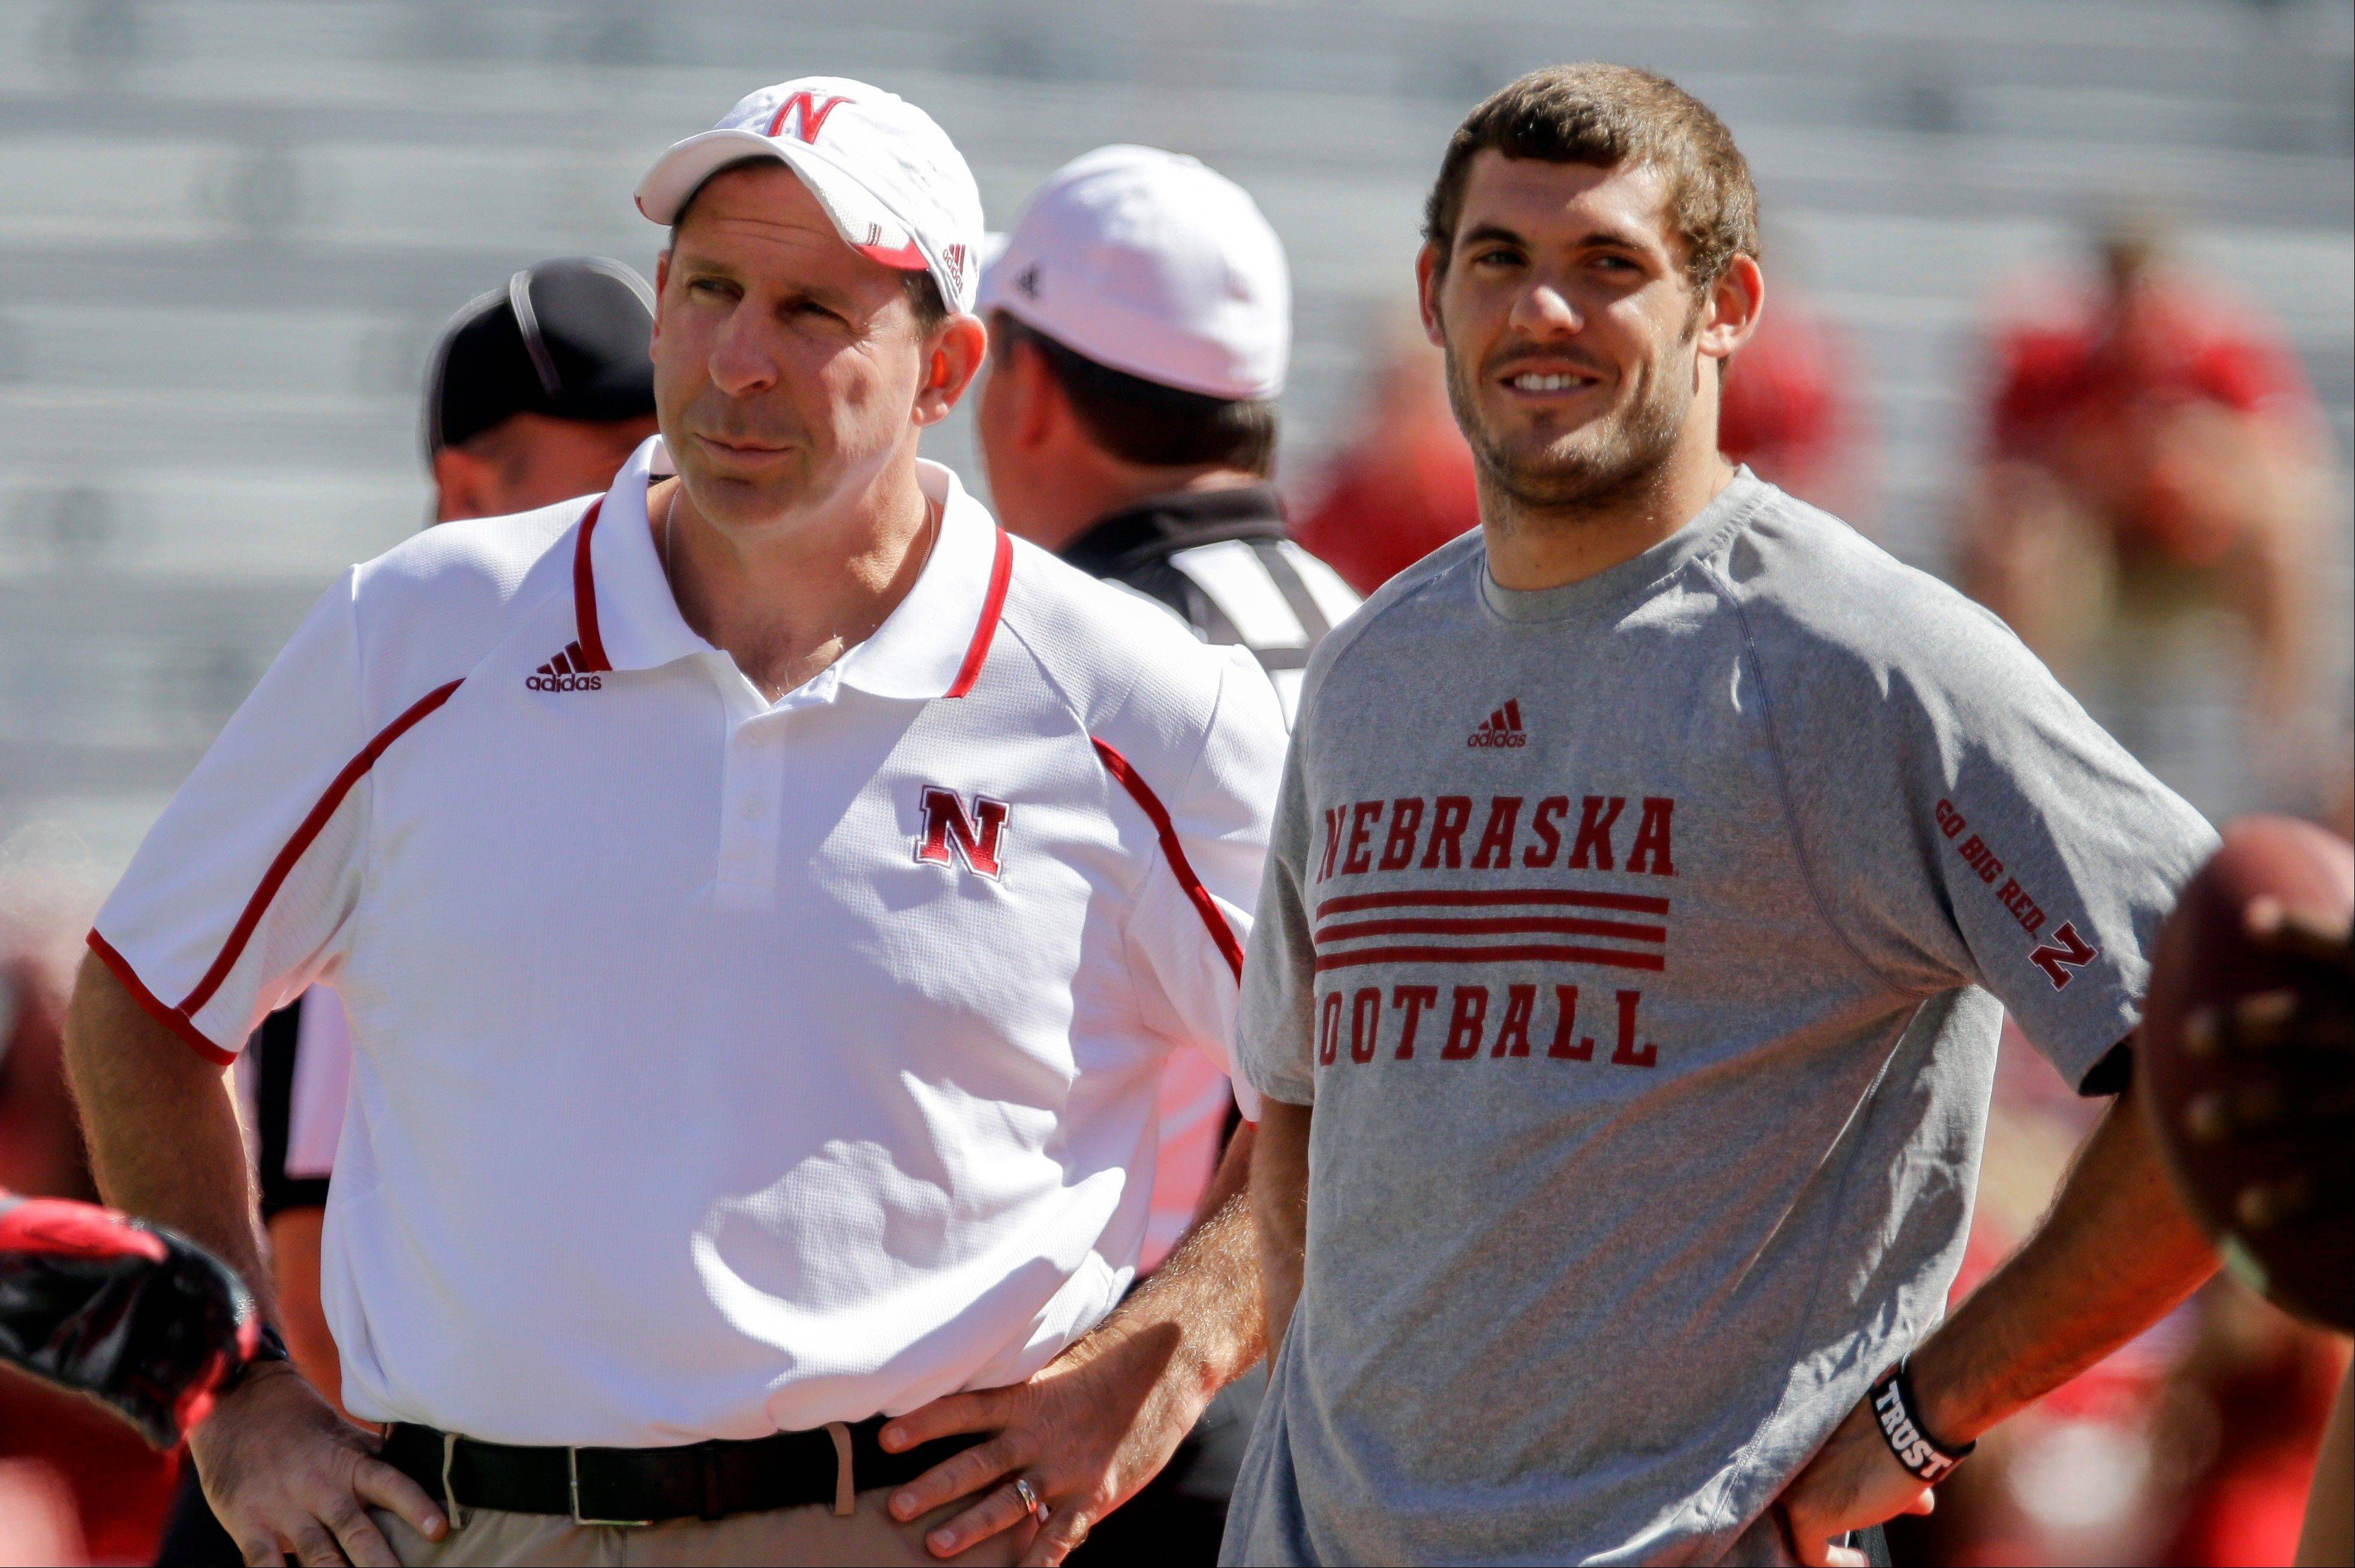 Nebraska head coach Bo Pelini, left, and injured Nebraska quarterback Taylor Martinez watch the team before a Sept. 21 game against South Dakota State. Martinez could play against Minnesota this Saturday if he's able to put more stress on his injured left foot as the week progresses.